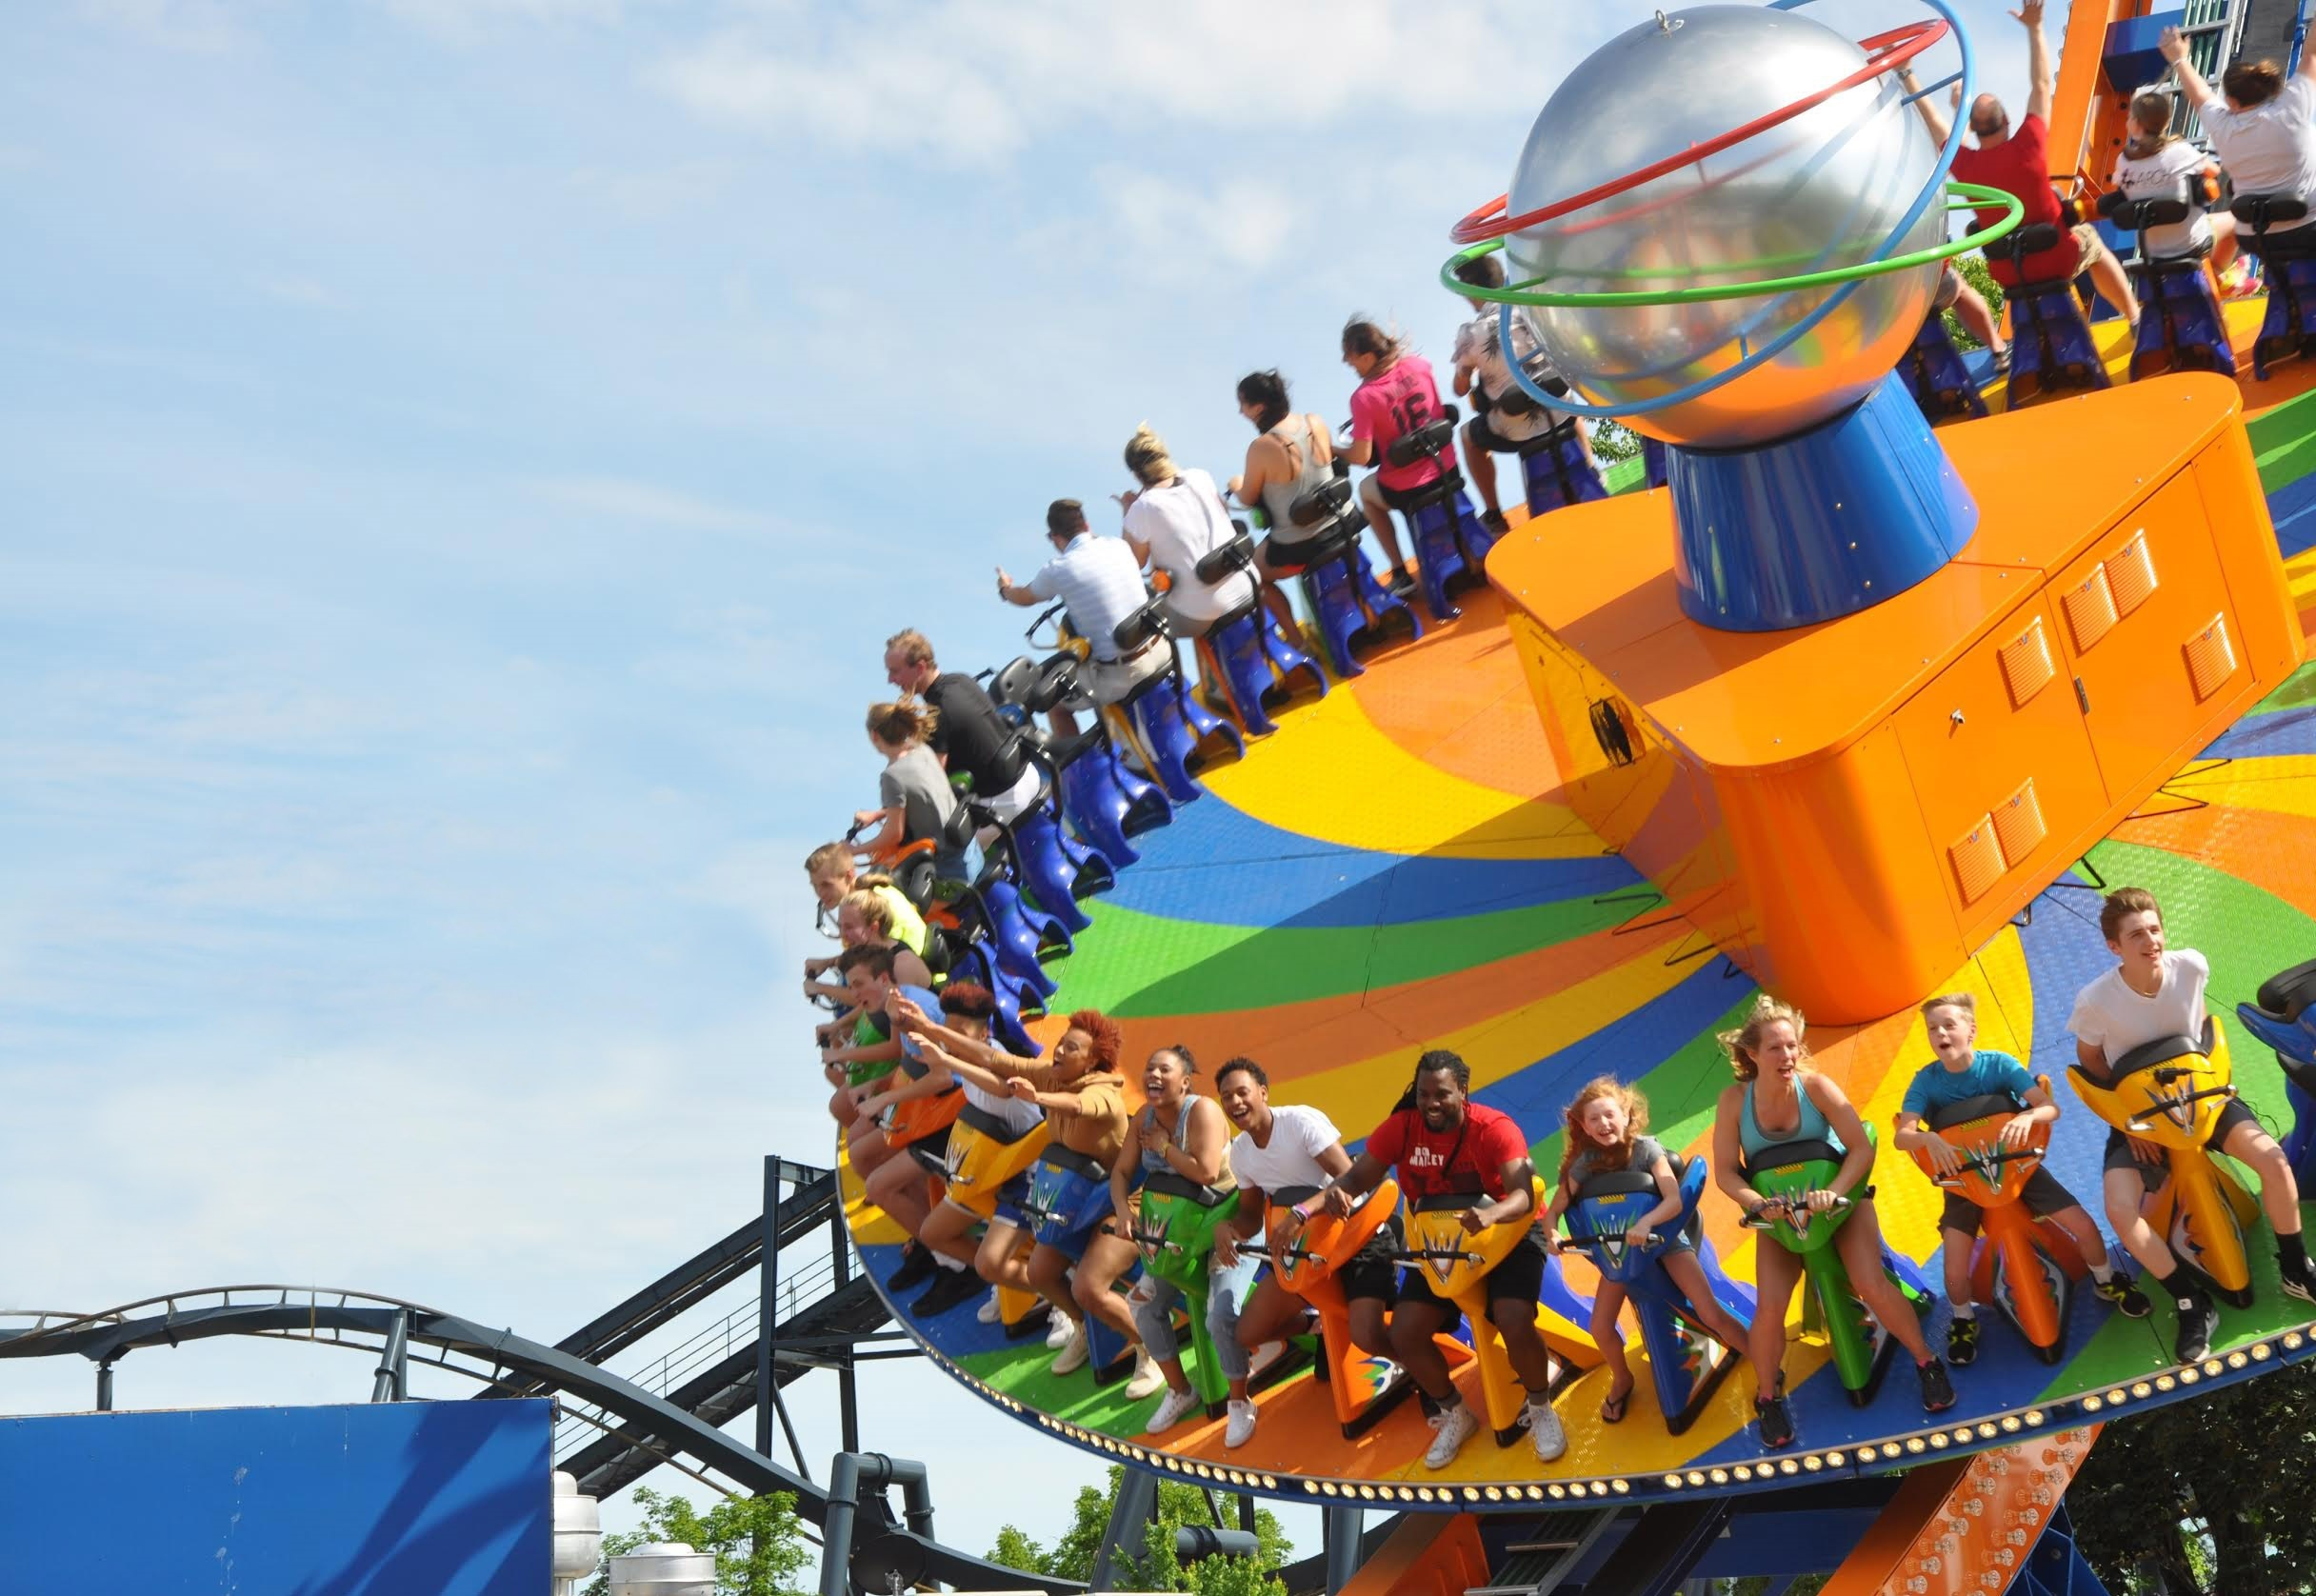 spinsanity is the latest thrill to whirl into six flags st louis